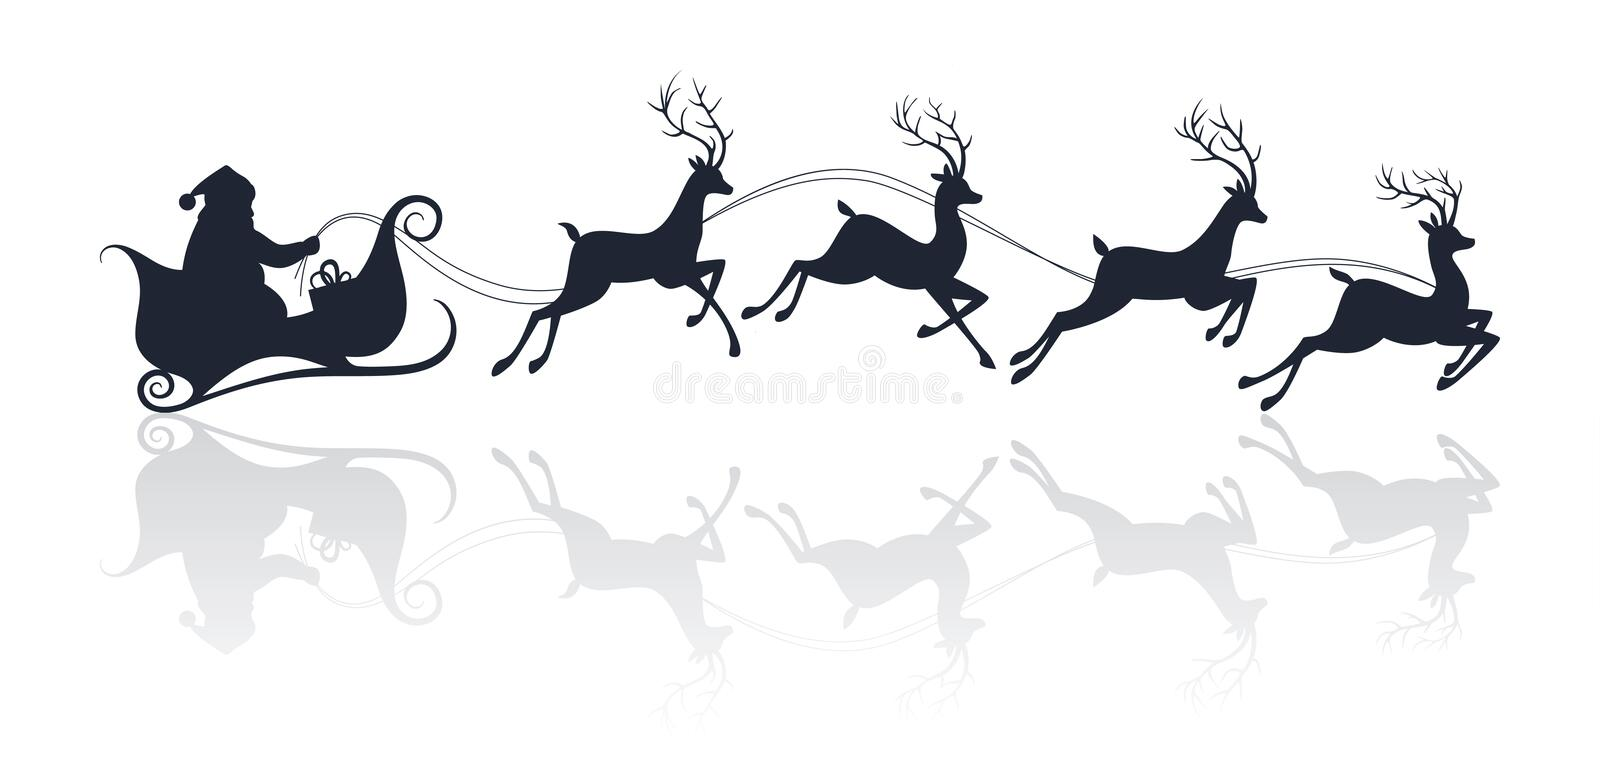 Santa Claus silhouette riding a sleigh with deers. Vector illustration stock illustration